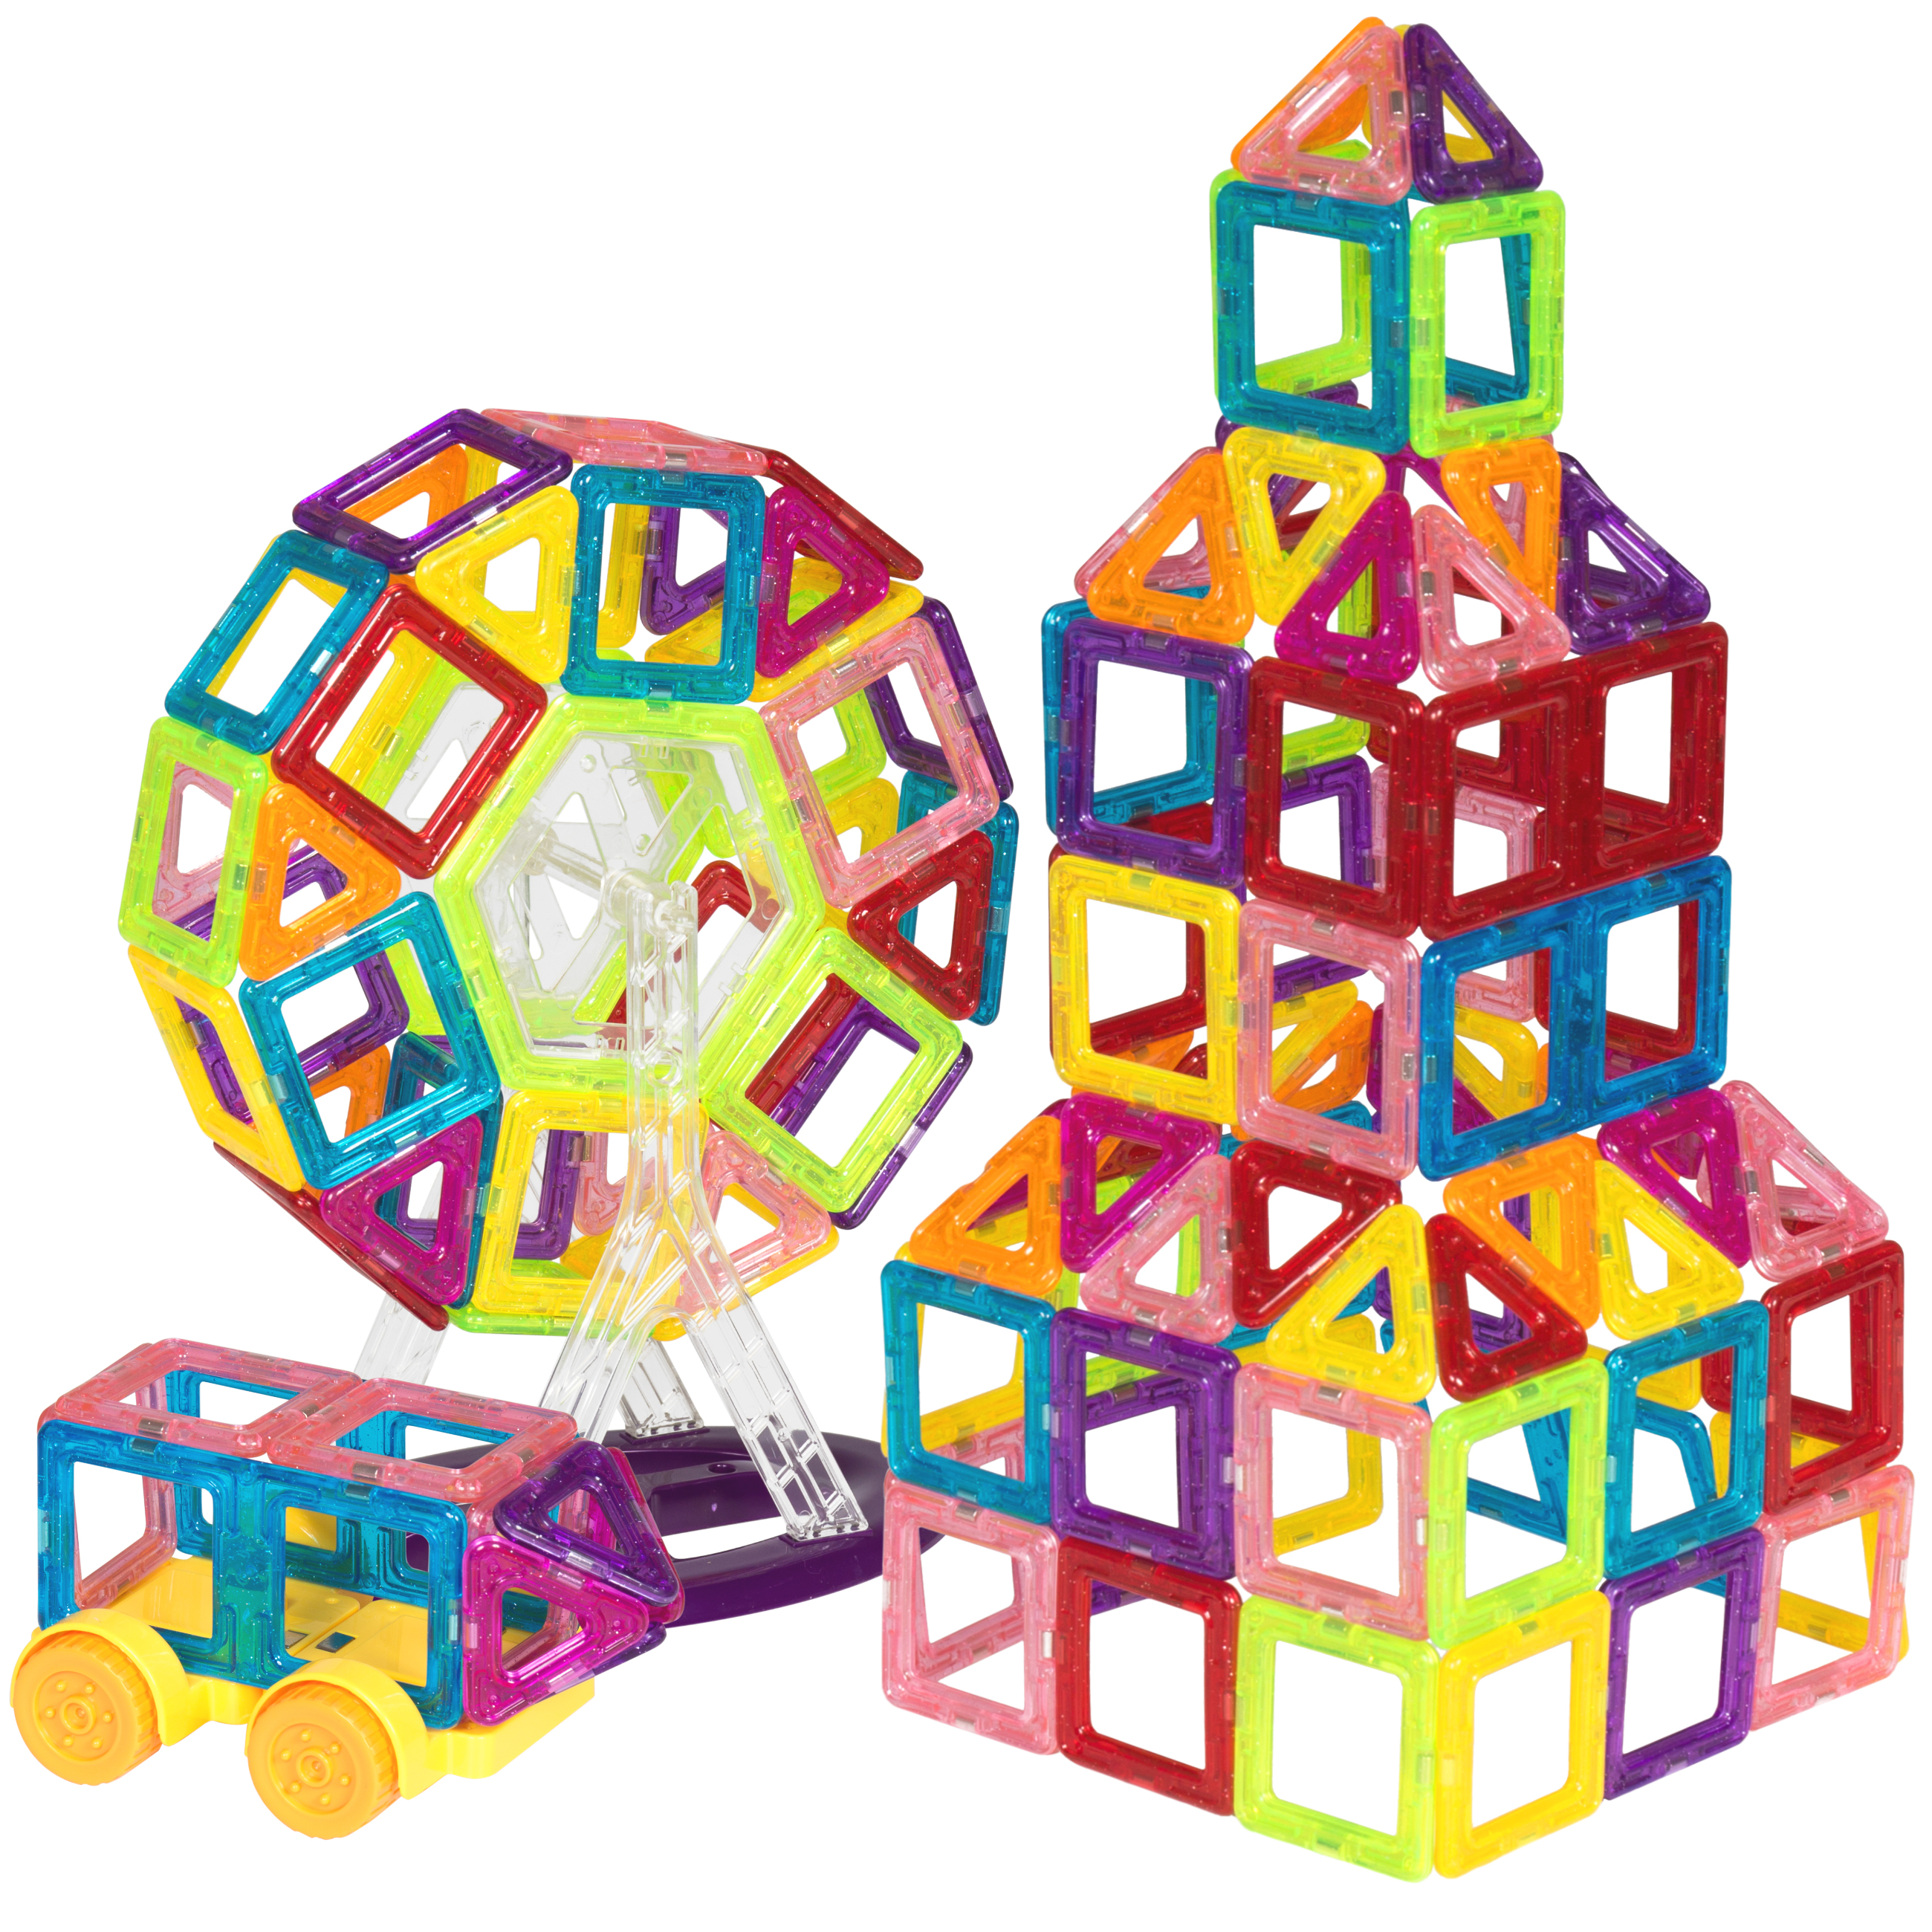 Best Choice Products 158-Piece Kids Mini Clear Magnetic Building Block Tiles Educational STEM Toy Set - Multicolor